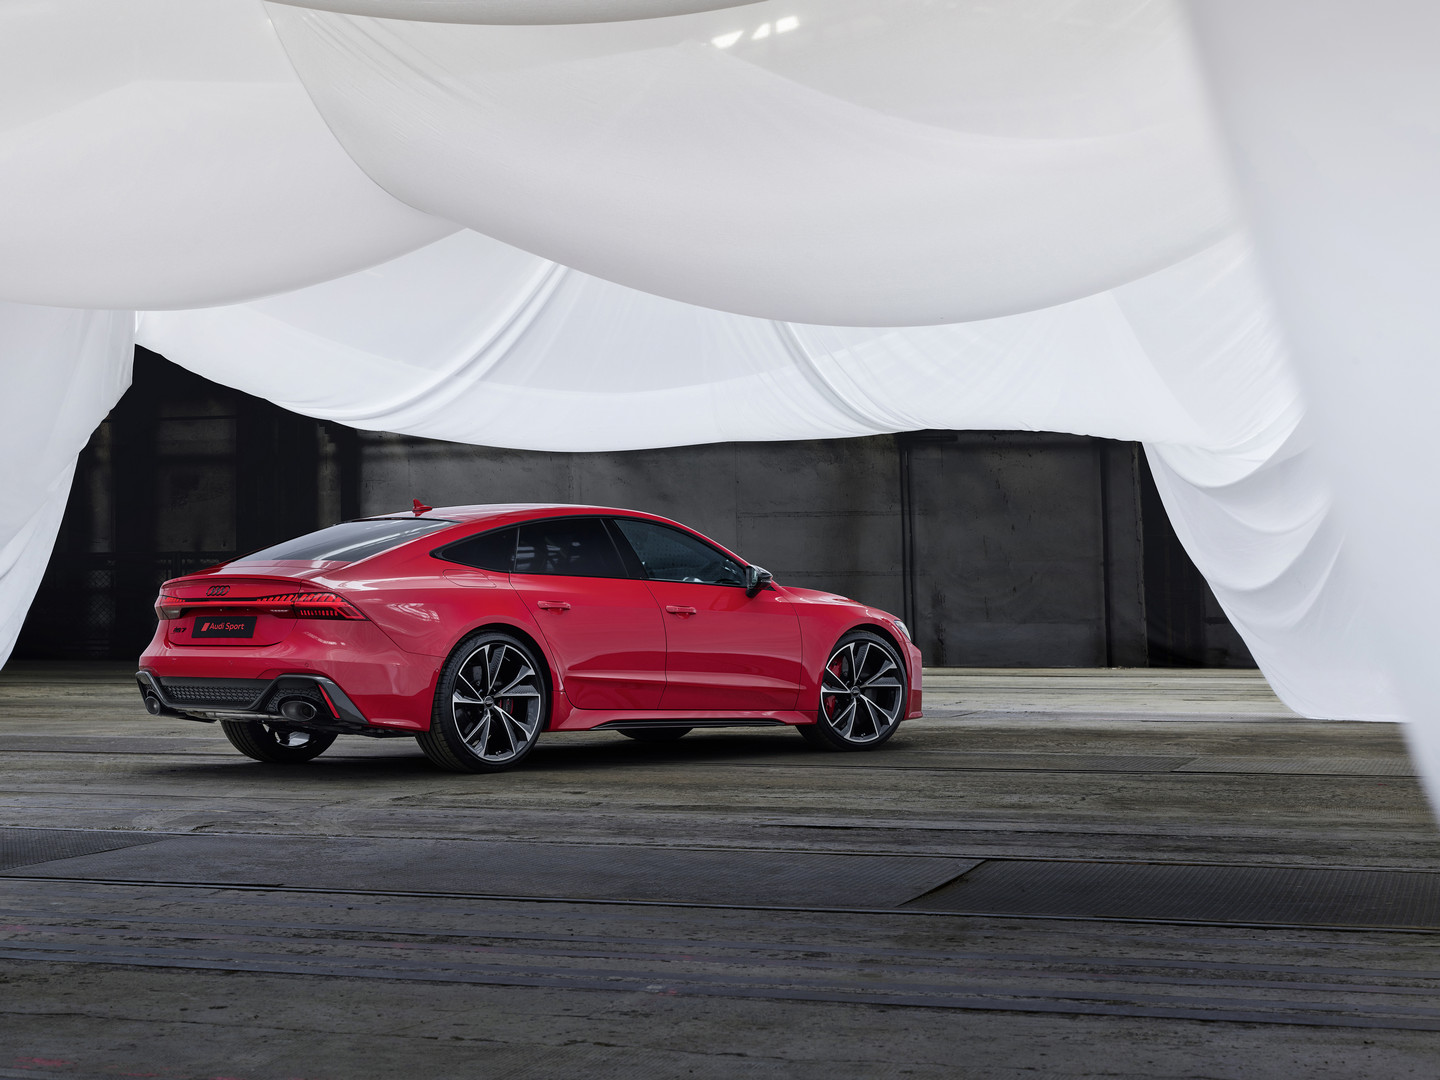 Red Audi RS7 Sportback